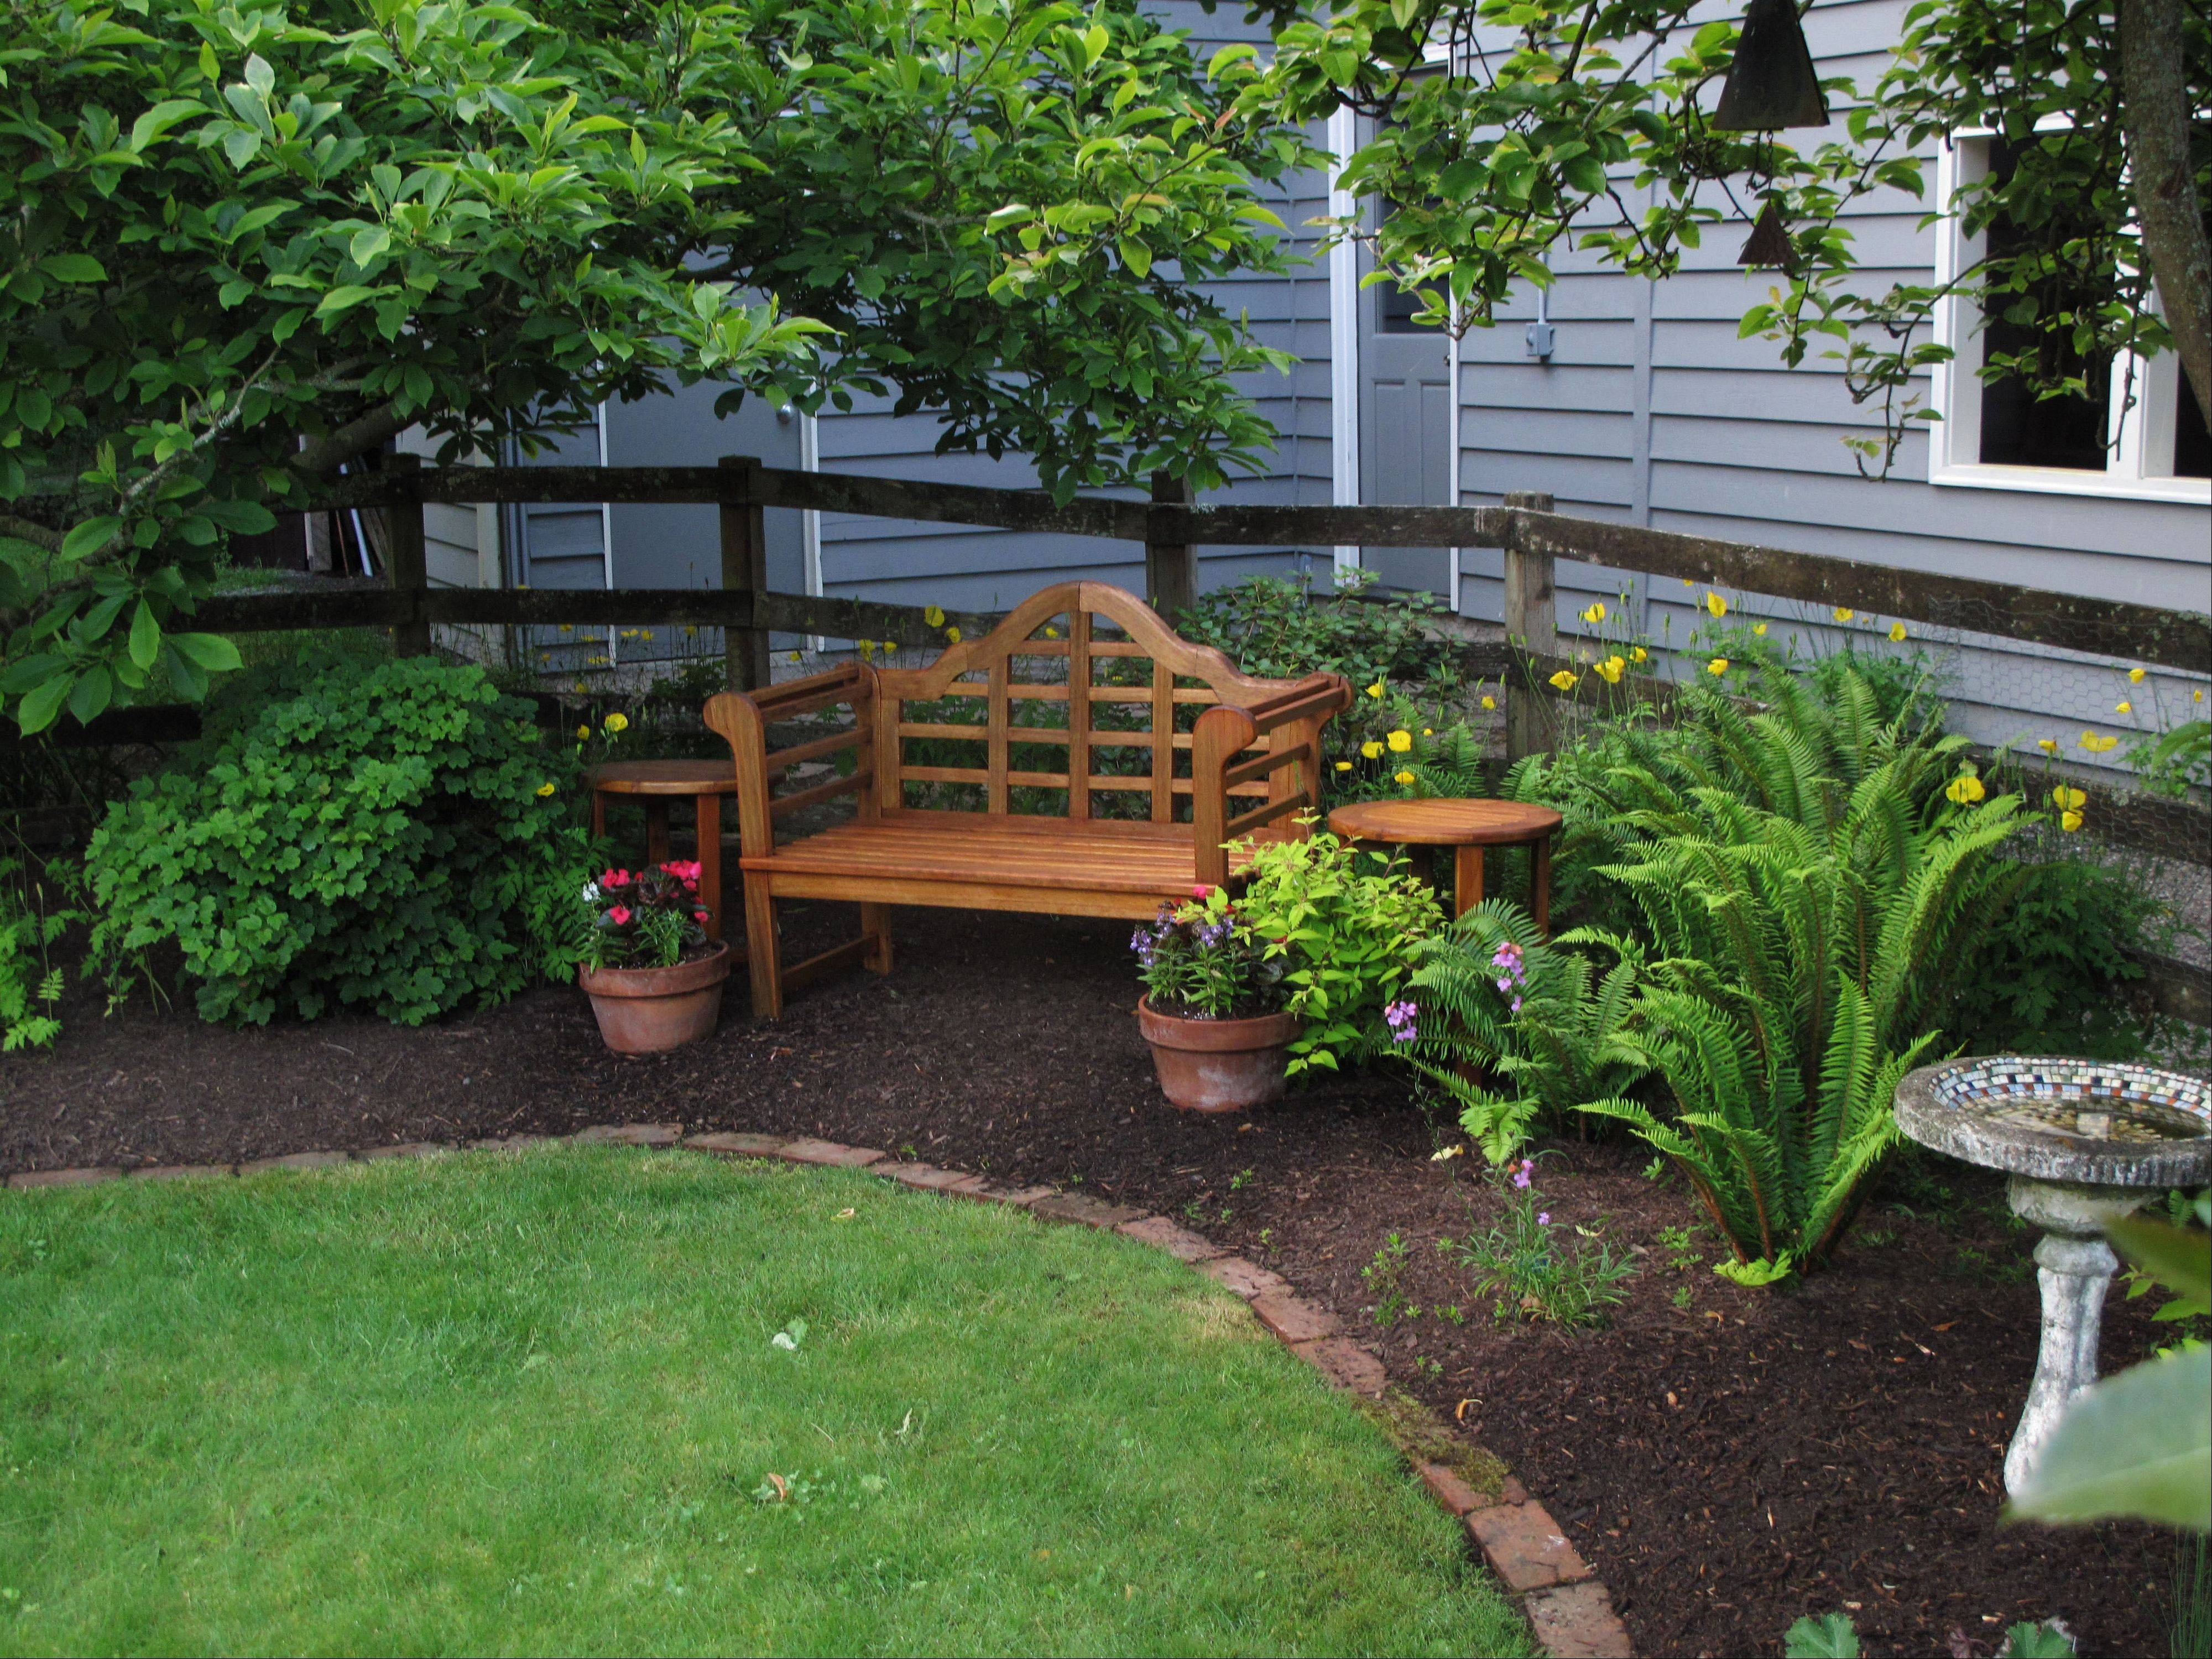 The lawn remains the centerpiece in this yard, but was greatly downsized and shaped by a landscaped perimeter consisting of furniture, statuary and a variety of perennials, in Langley, Wash. Less mowing, less watering and fewer chemicals was the result. It attracts more wildlife, too.